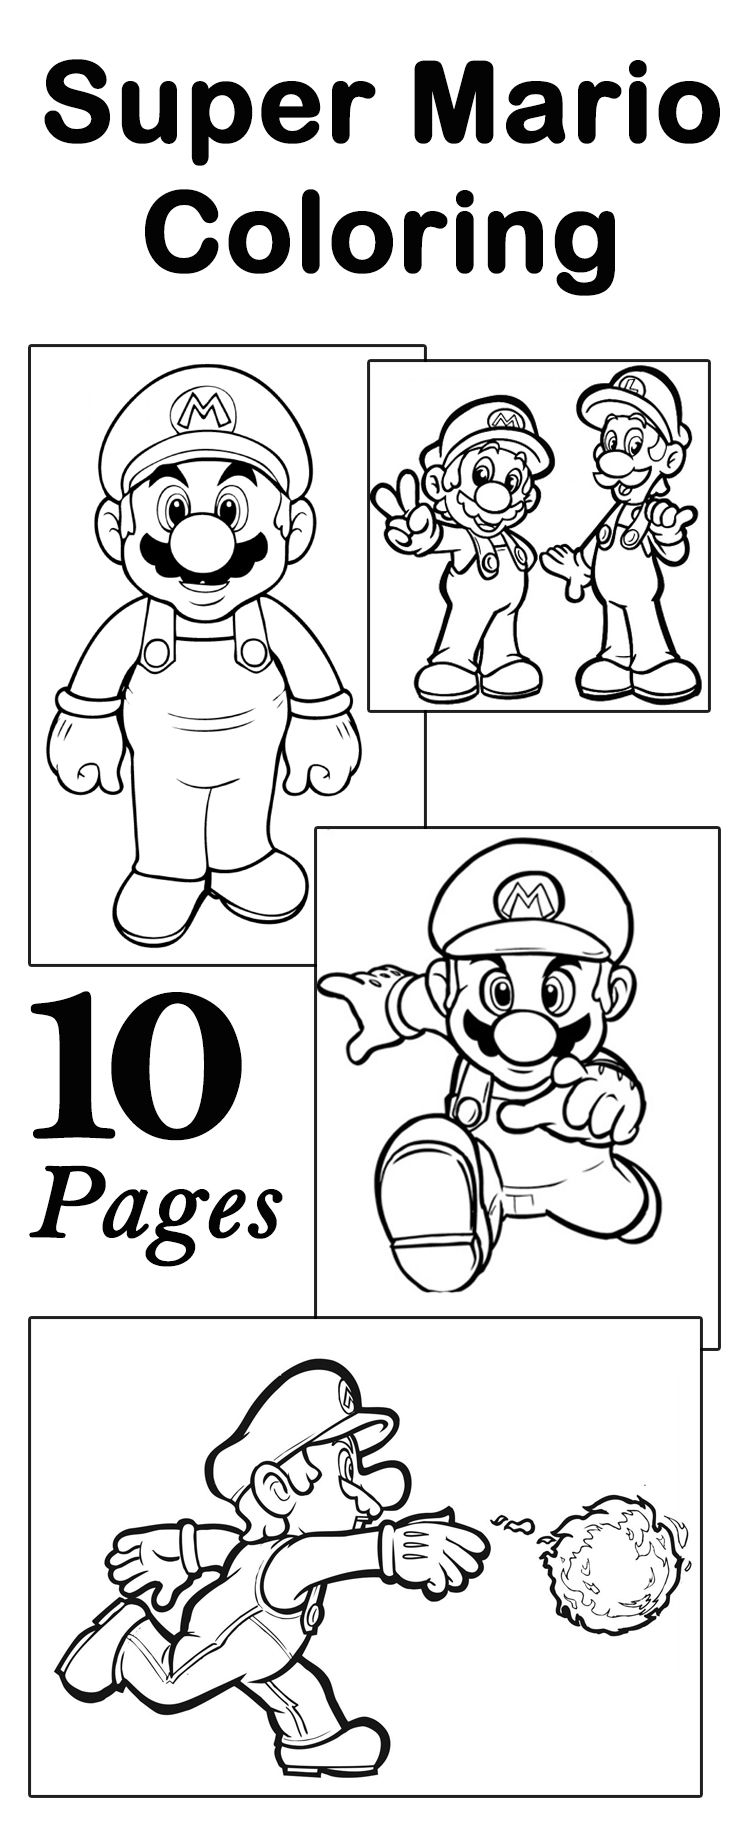 Top 20 Free Printable Super Mario Coloring Pages Online | Coloring ...